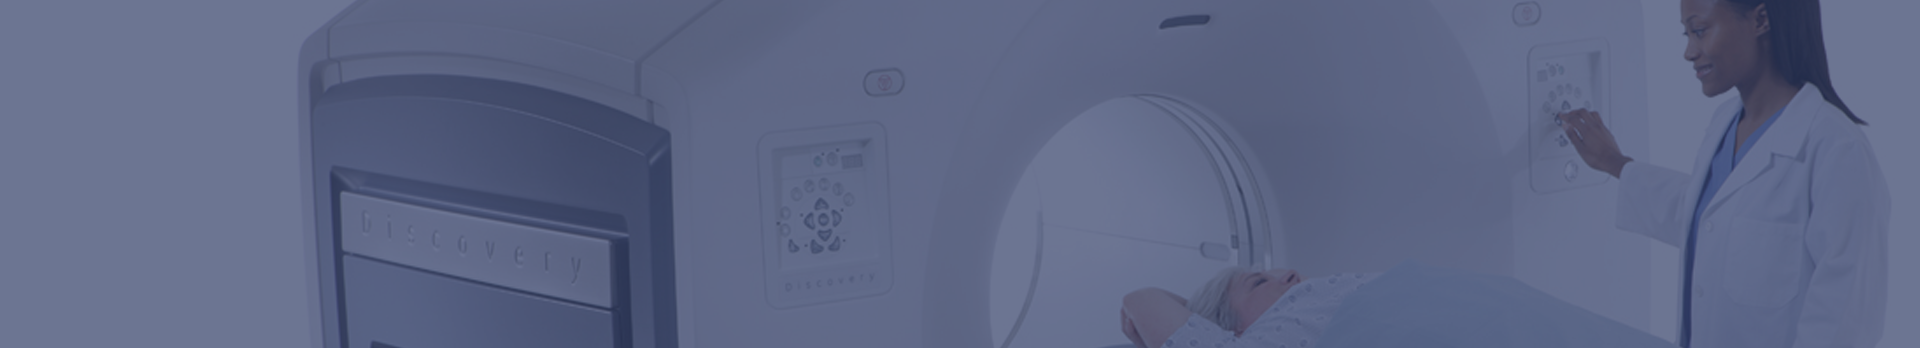 MRI- body scan-technology-medical imaging-body scans-advanced technology-healthy-analysis